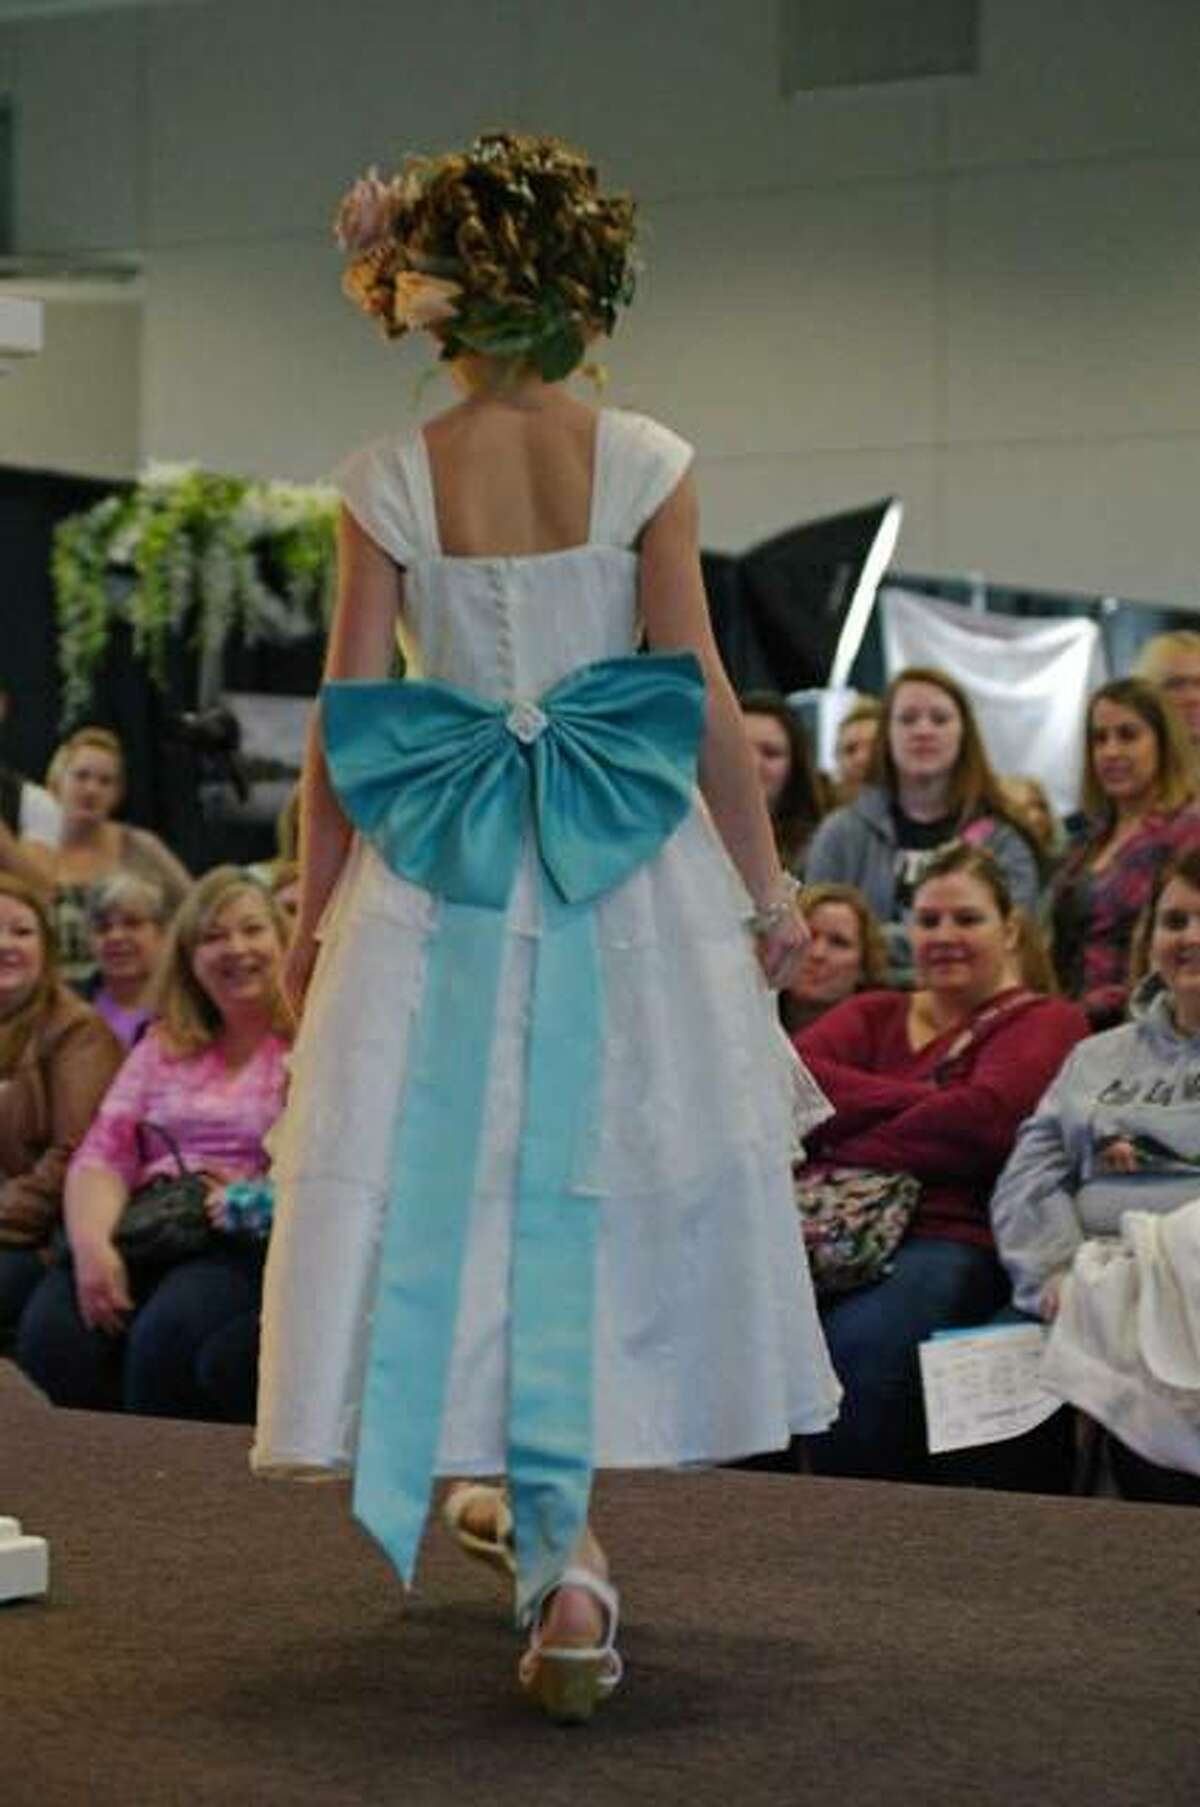 A flower girl dress being modeled at the bridal fashion show.